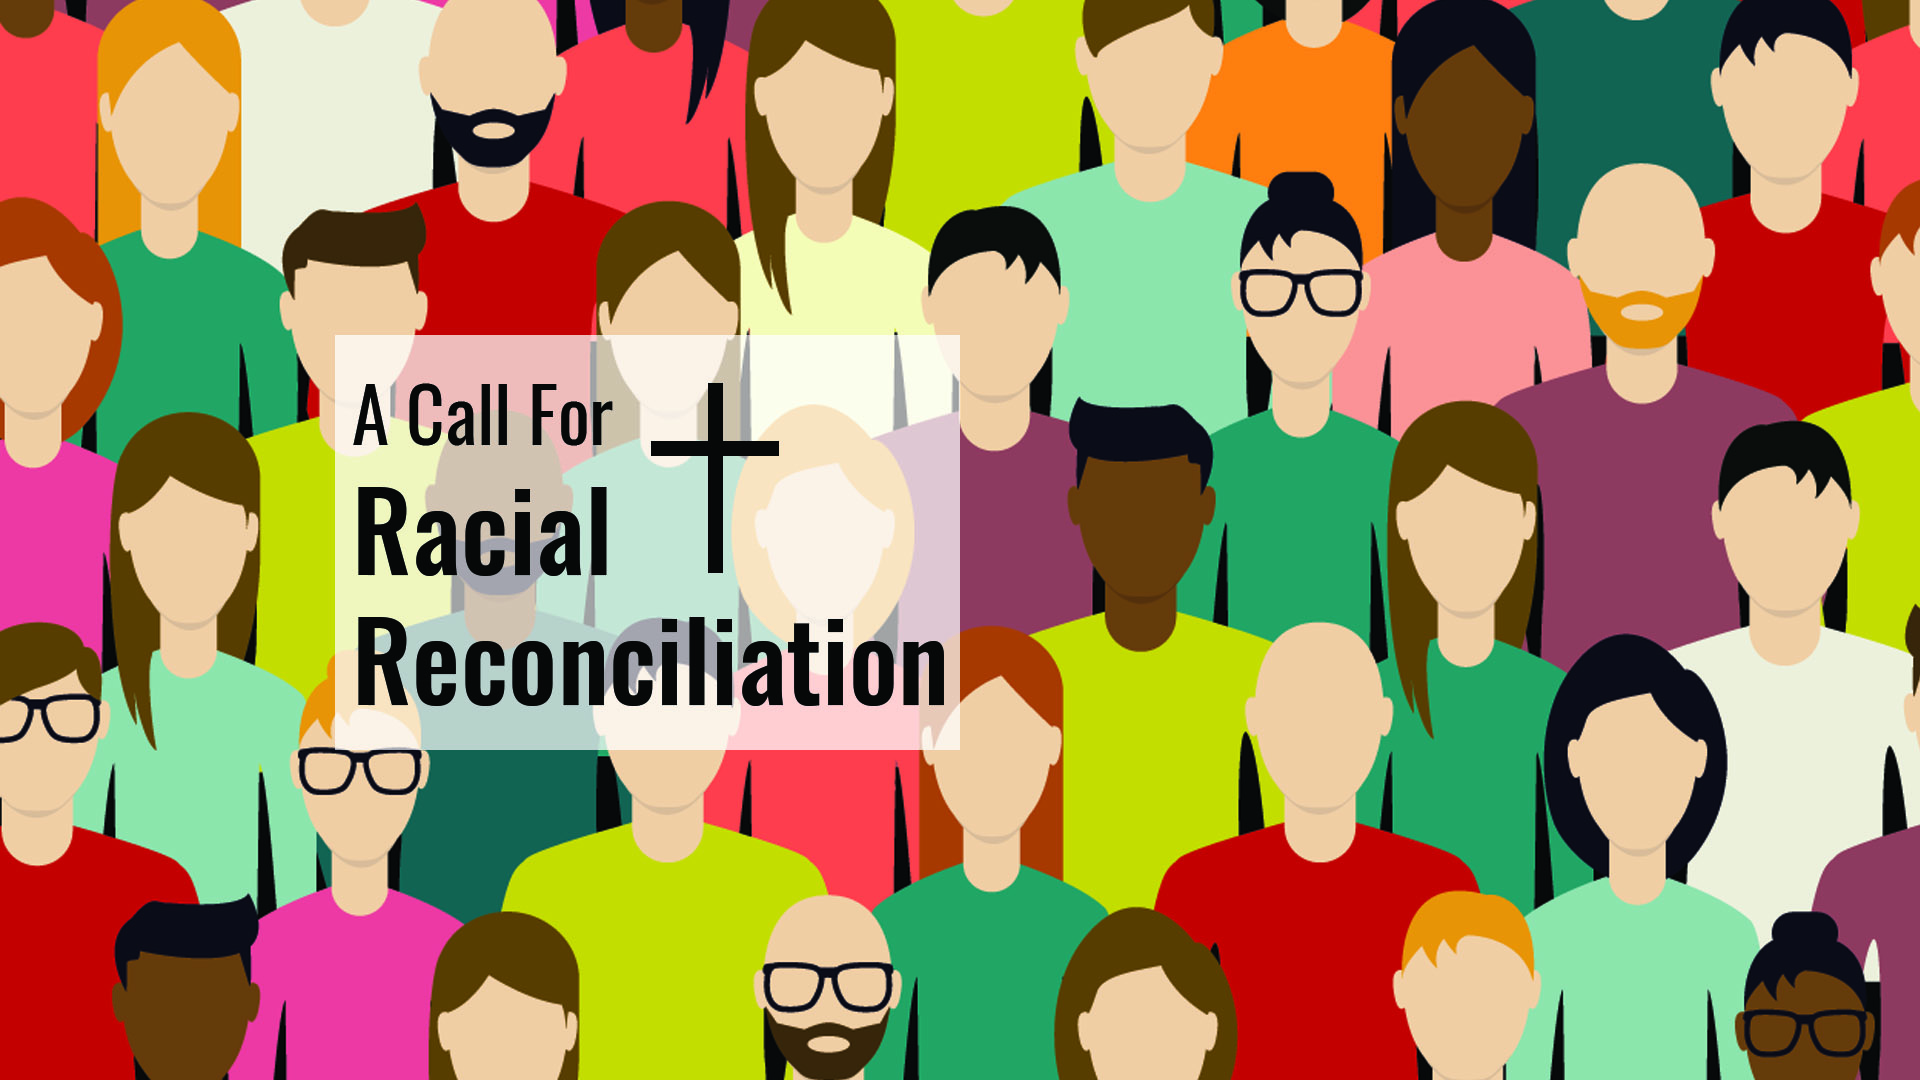 A Call for Racial Reconciliation